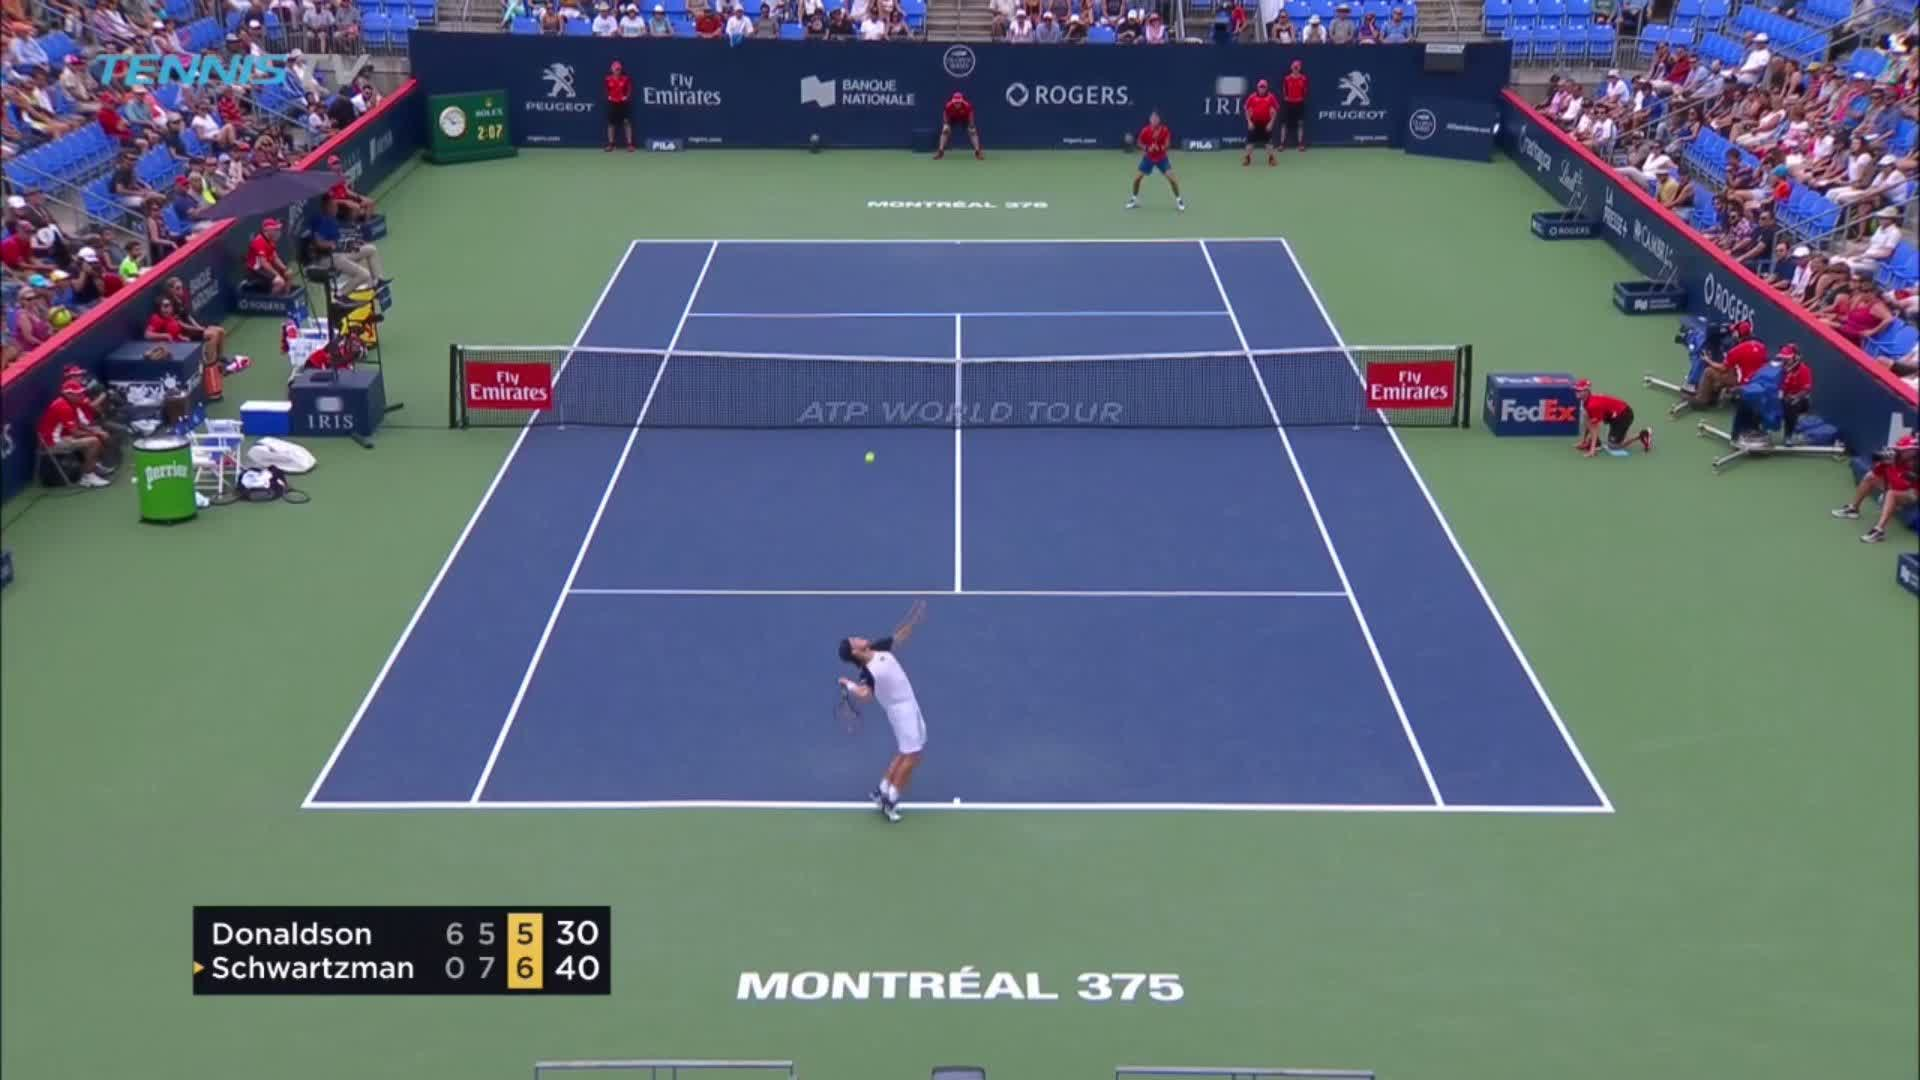 Go Go Diego!   Schwartzman battles back from a set and break down to reach the @CoupeRogers quarterfinal. �� https://t.co/MfiE7YD7c9